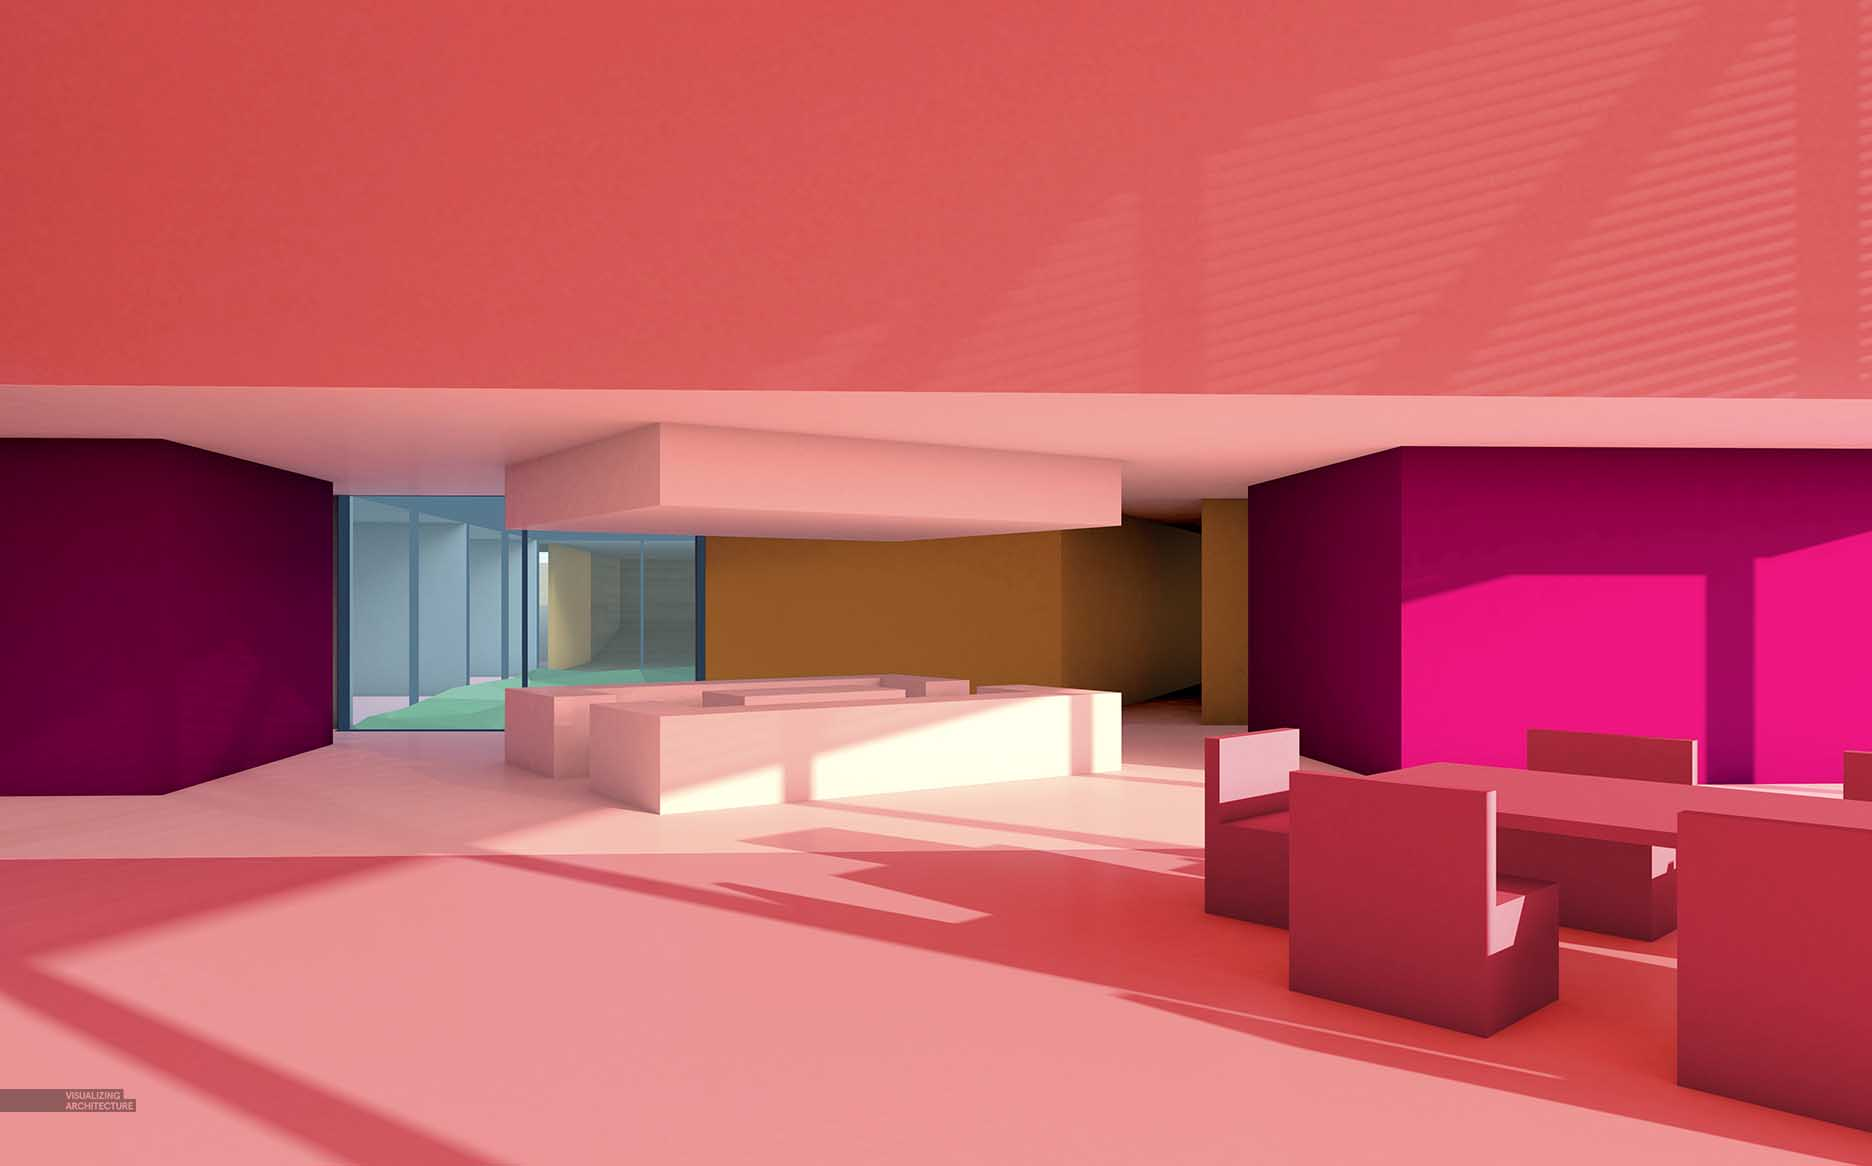 Desert Abstract Interior Studies | Visualizing Architecture